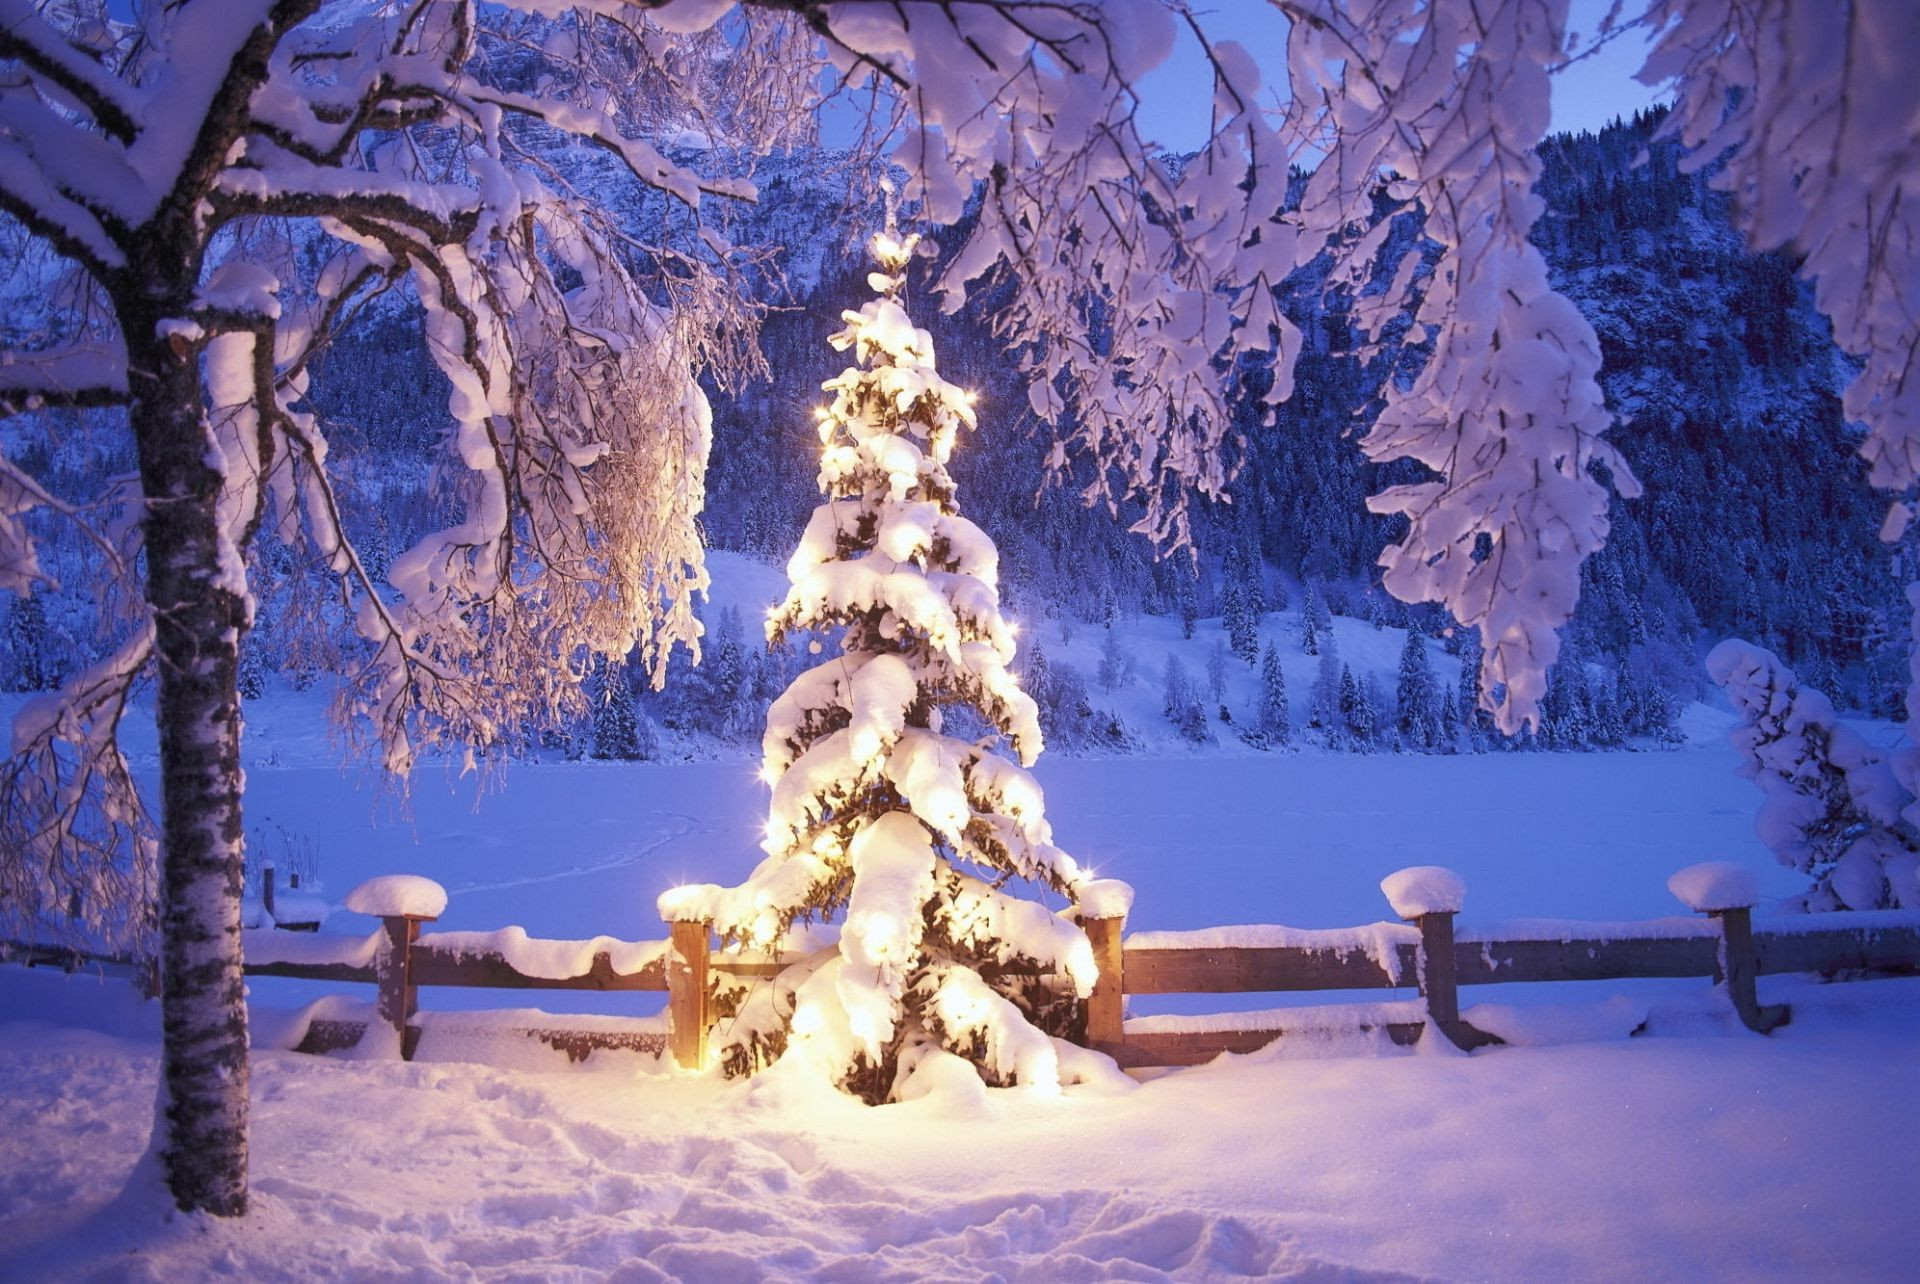 The Christmas Tree Lights Winter Snow IPhone Wallpapers For Free